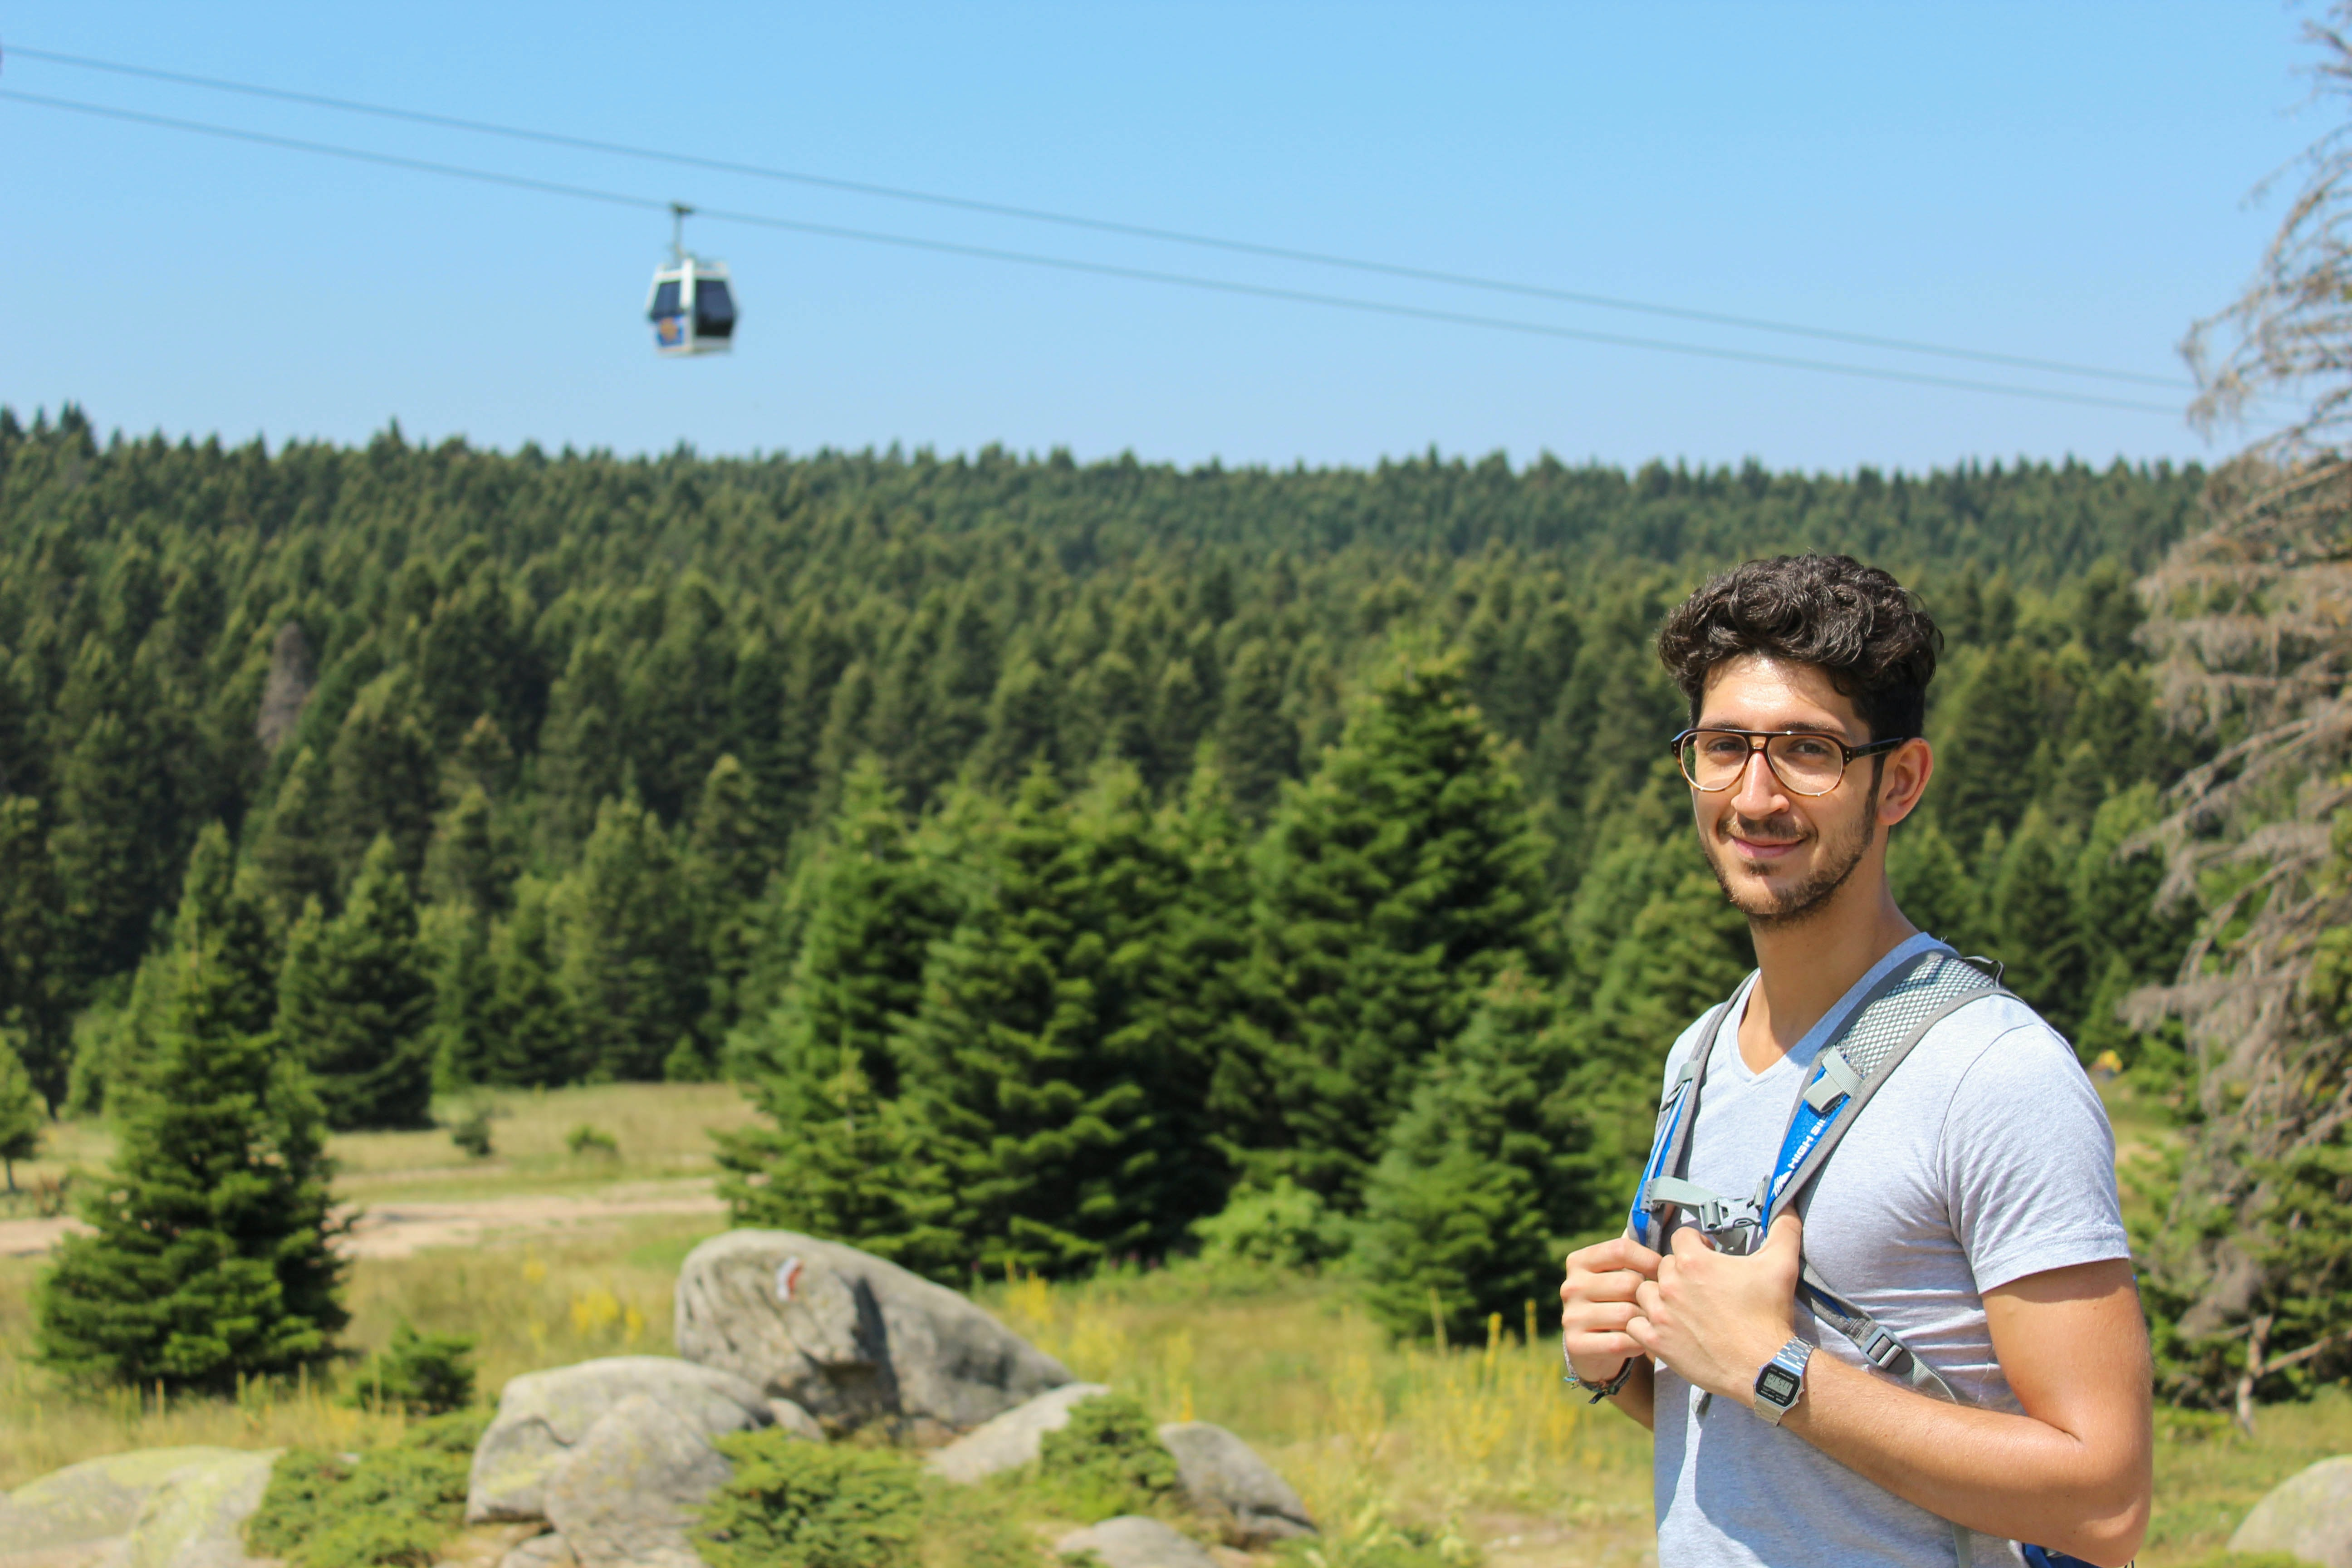 man standing near cable car during daytime